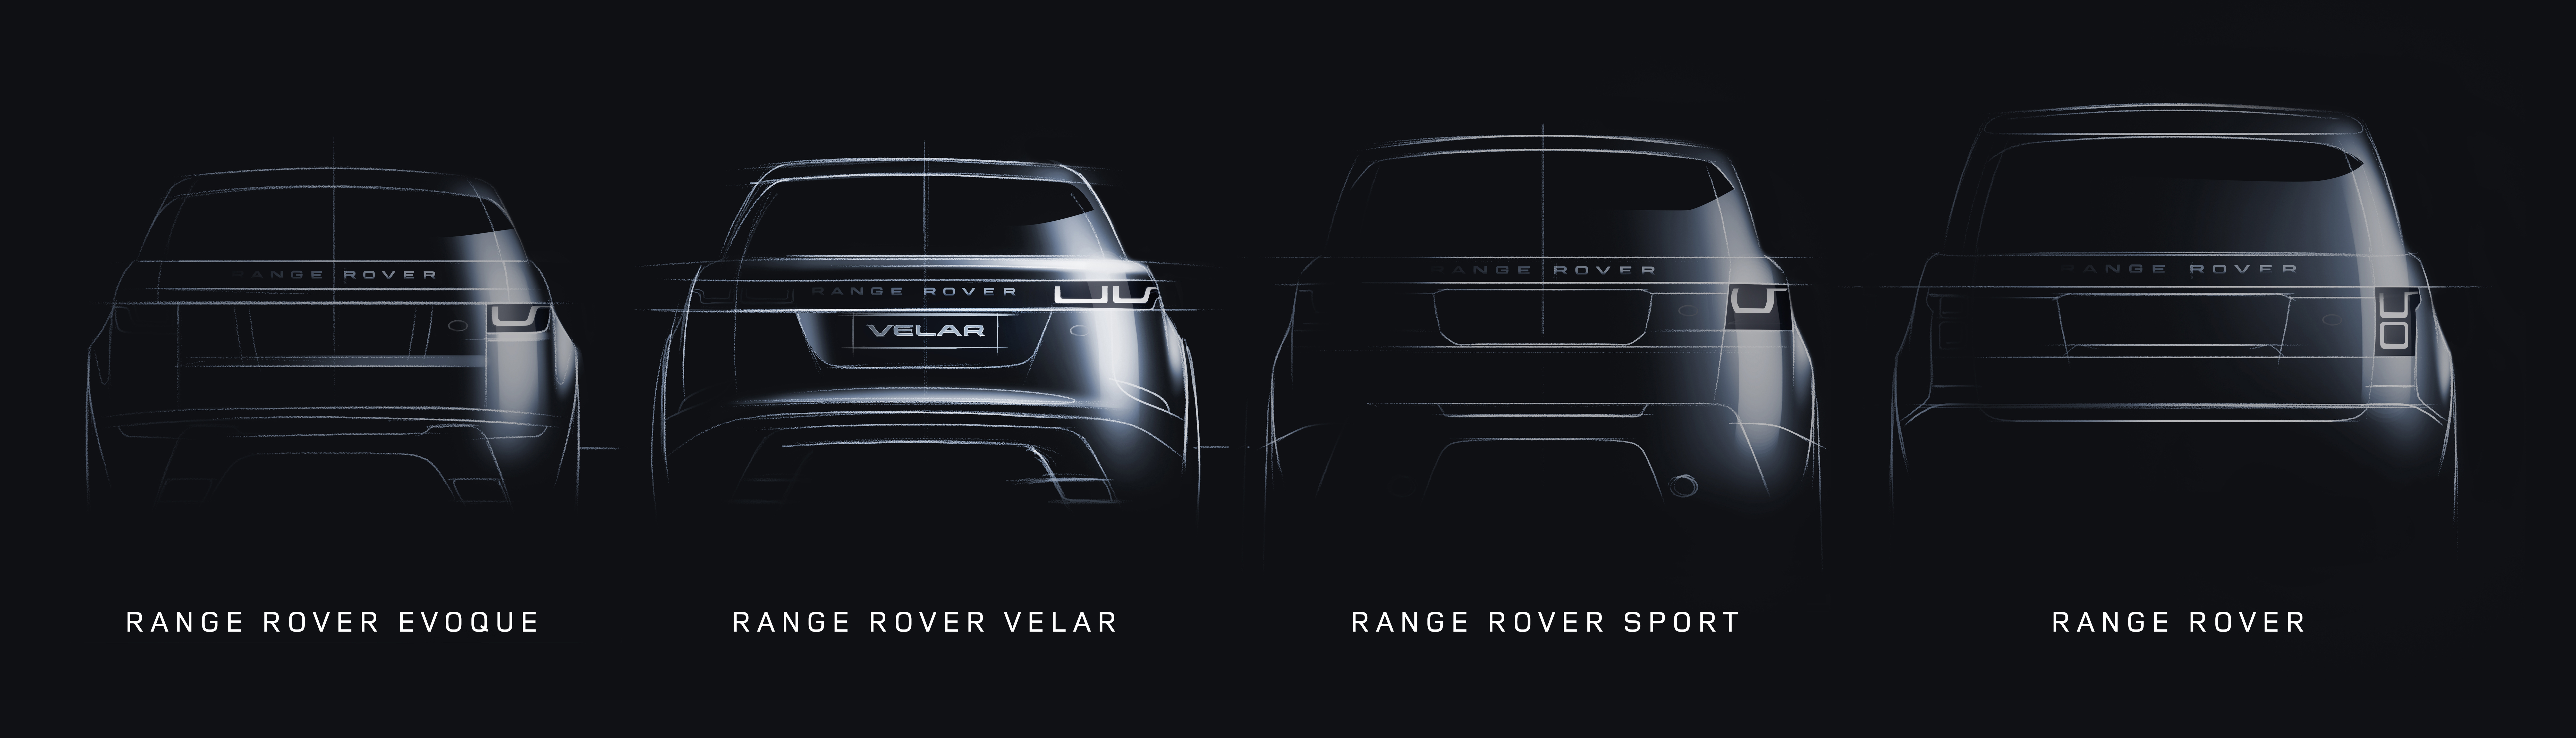 Salon de gen ve 2017 range rover velar premi re photo for Interieur range rover velar